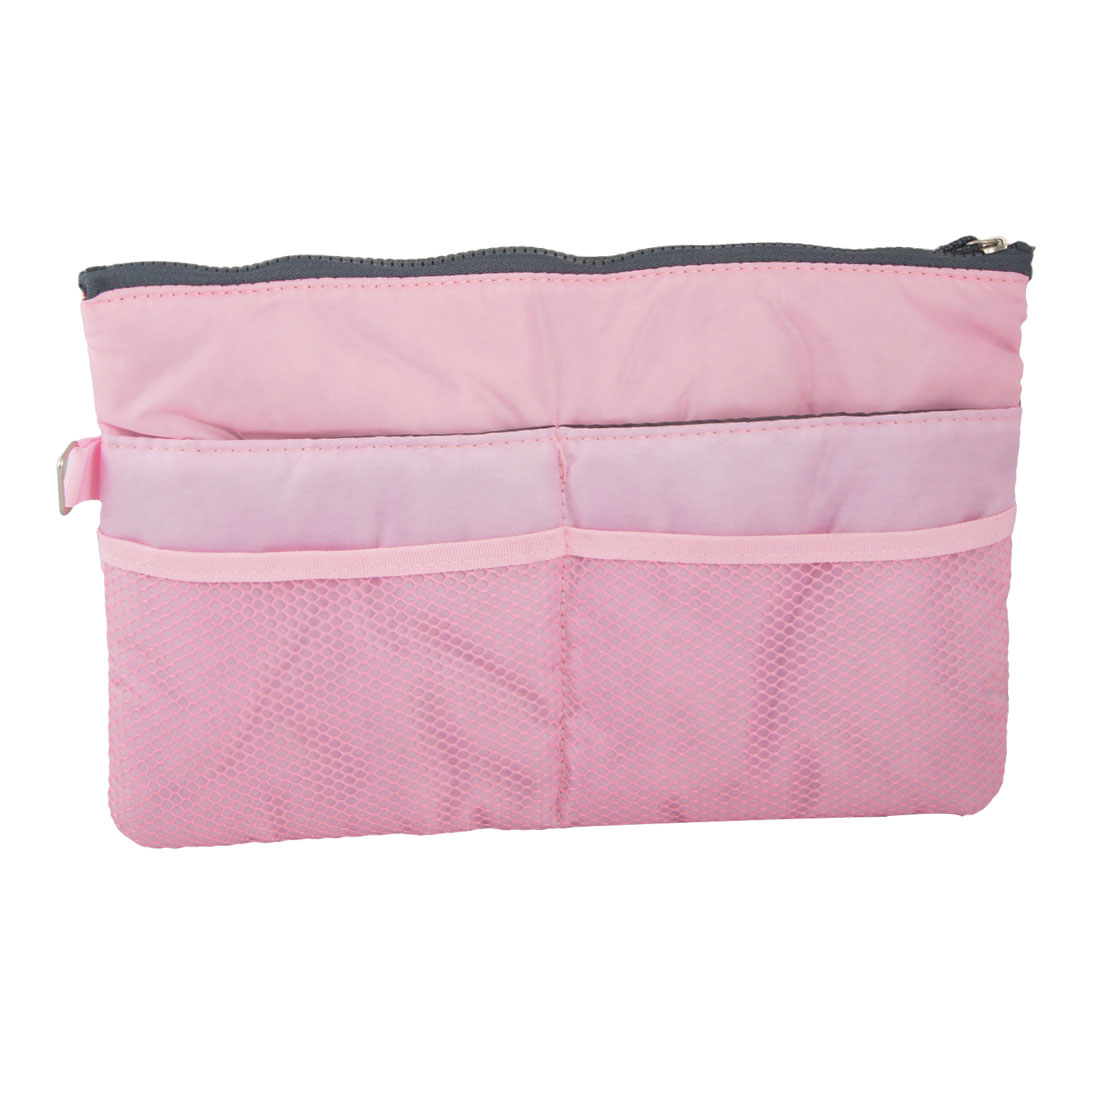 "Pink Zipper Closure 12"" 12.1"" Tablet PC Sleeve Bag Pouch"